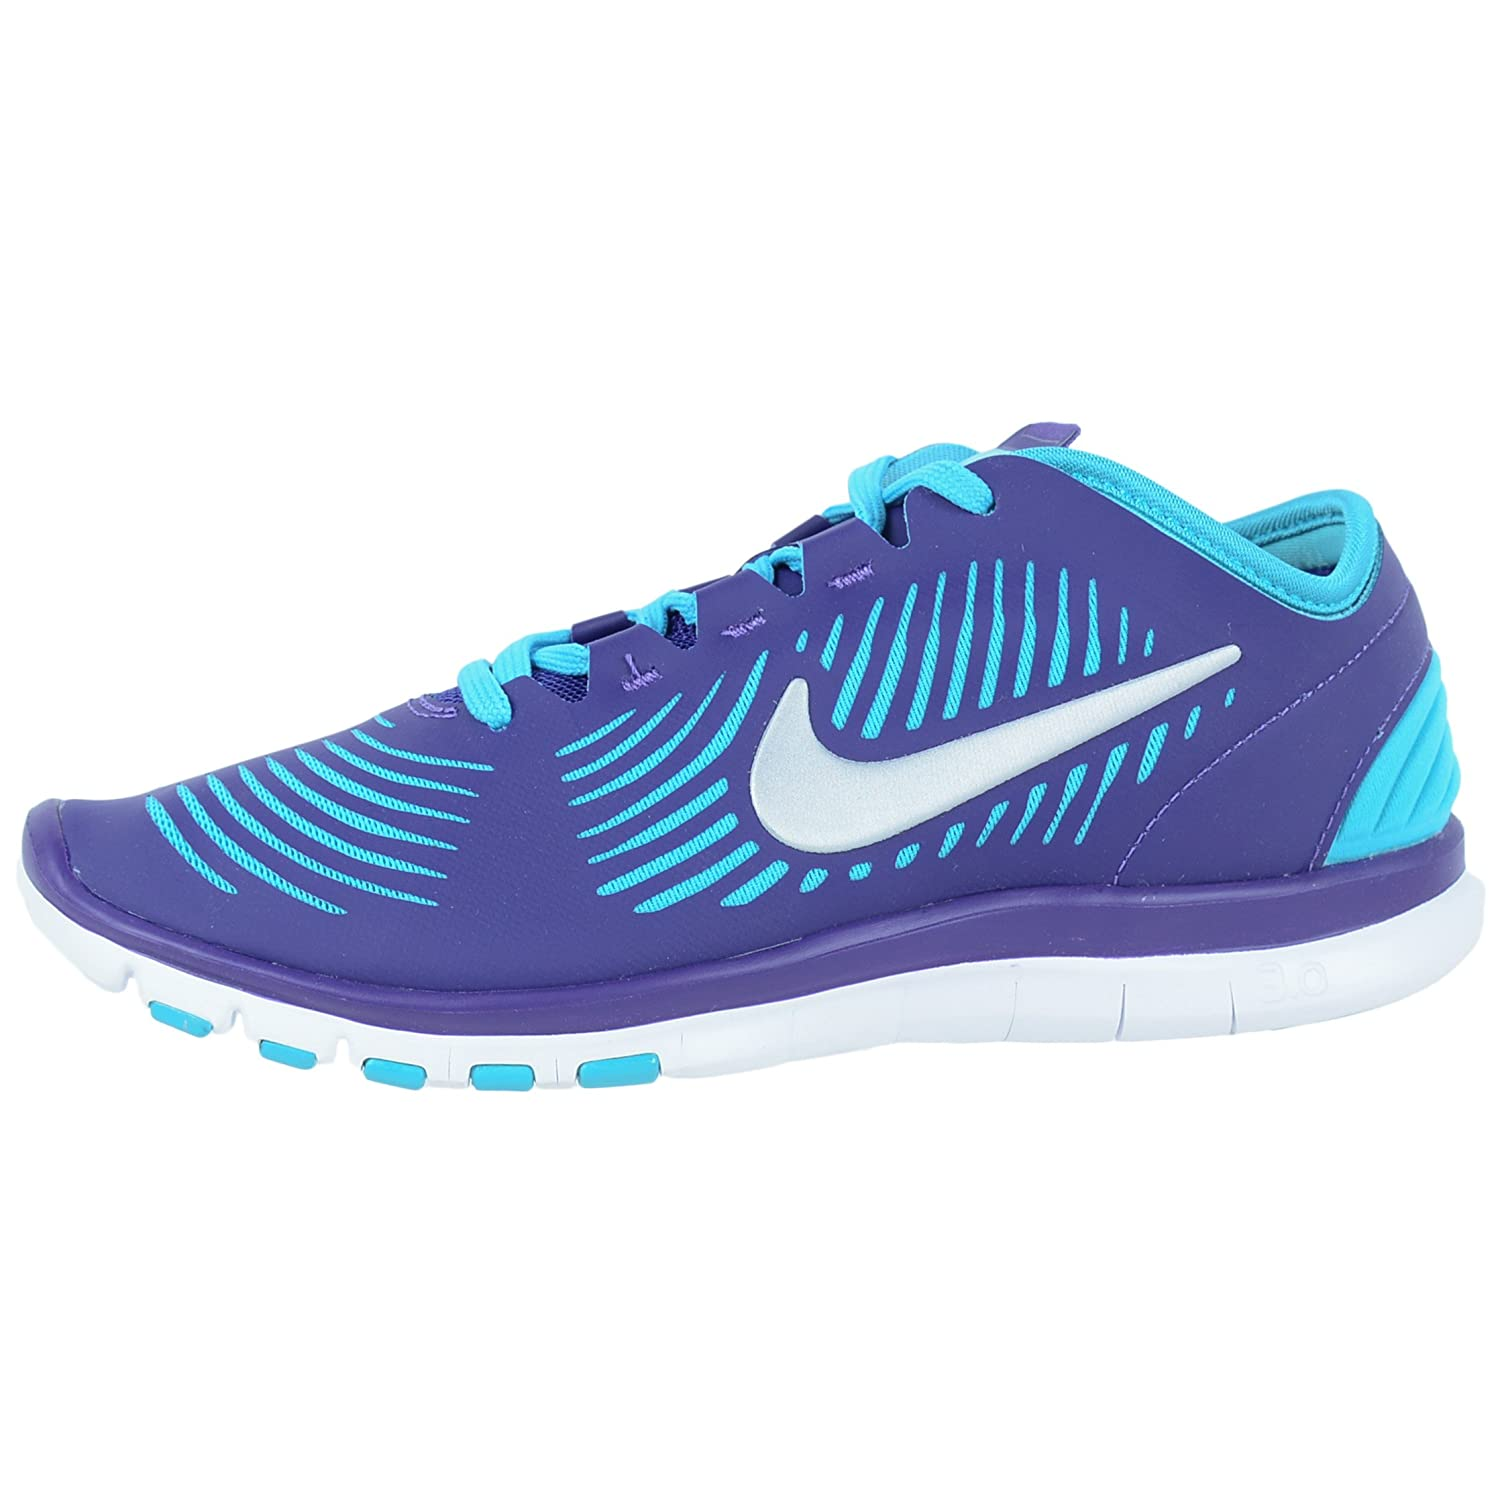 cheap for discount 7f845 6c14a Amazon.com   Nike Free Balanza Fitness Women s Shoes   Skateboarding